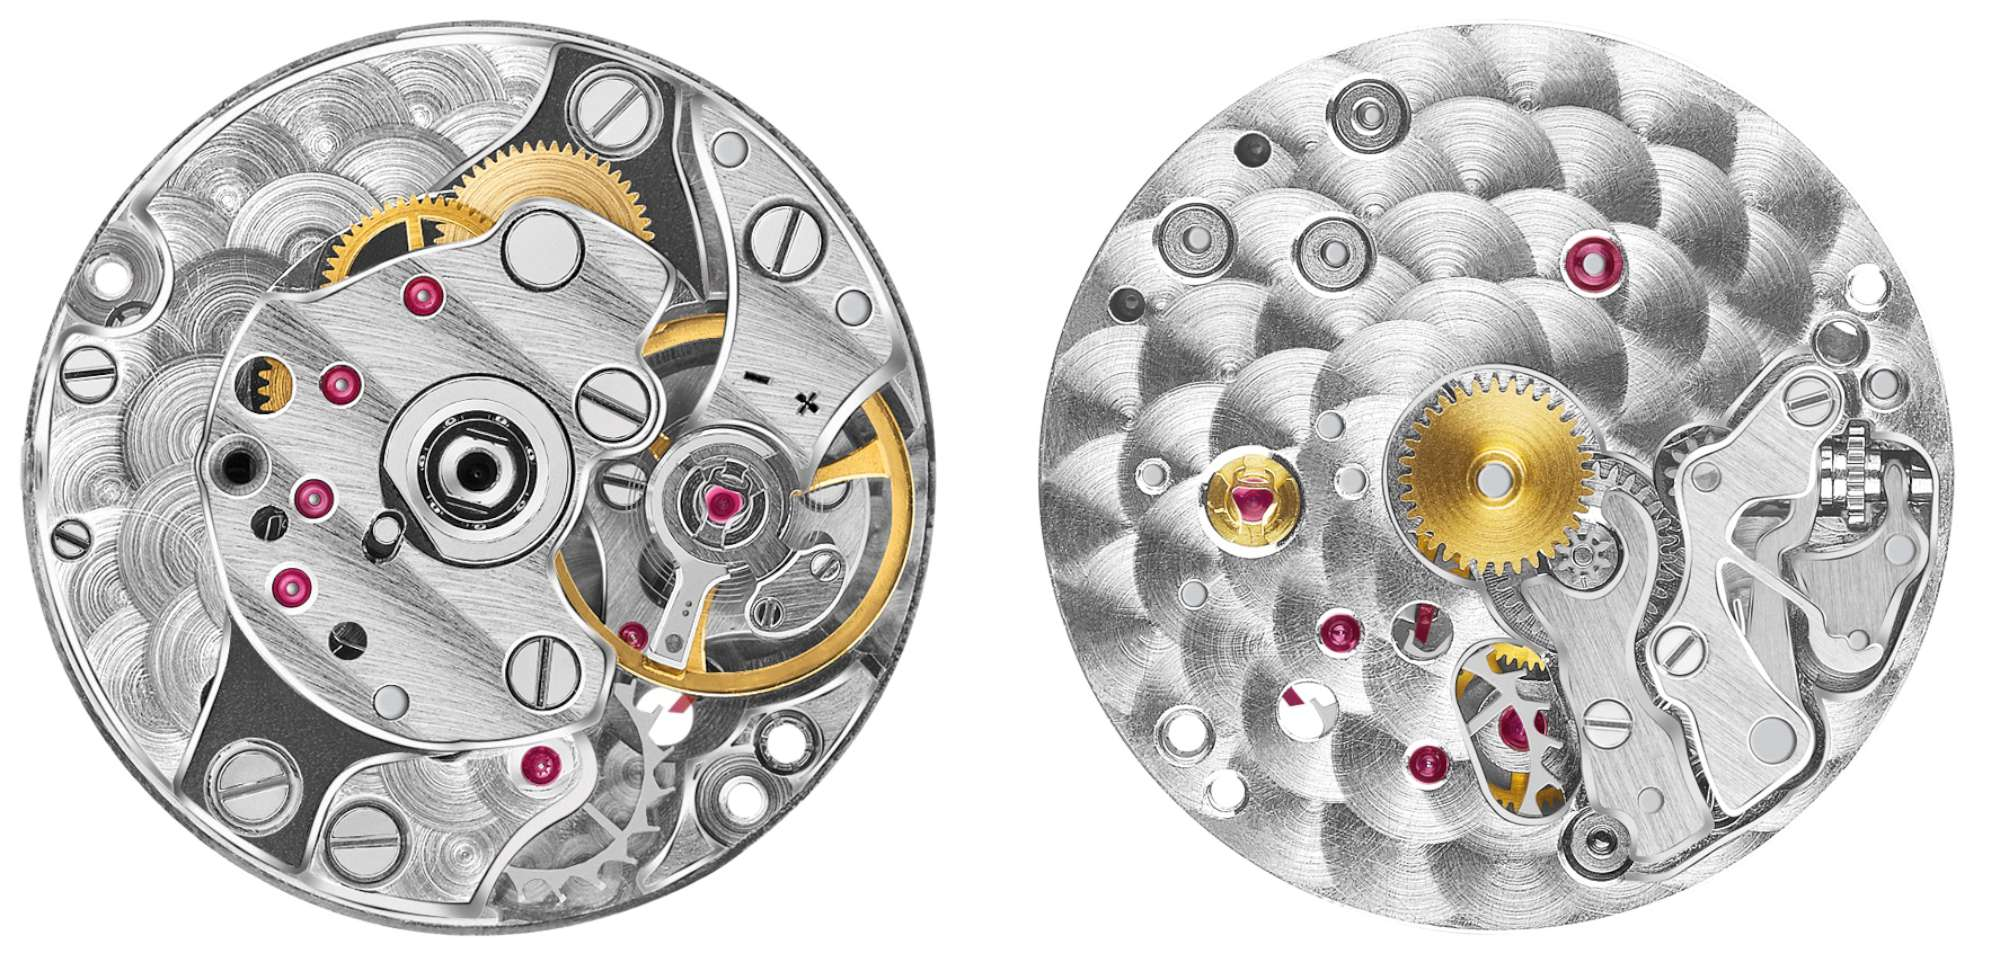 calibre_6150_front_and_back-2000